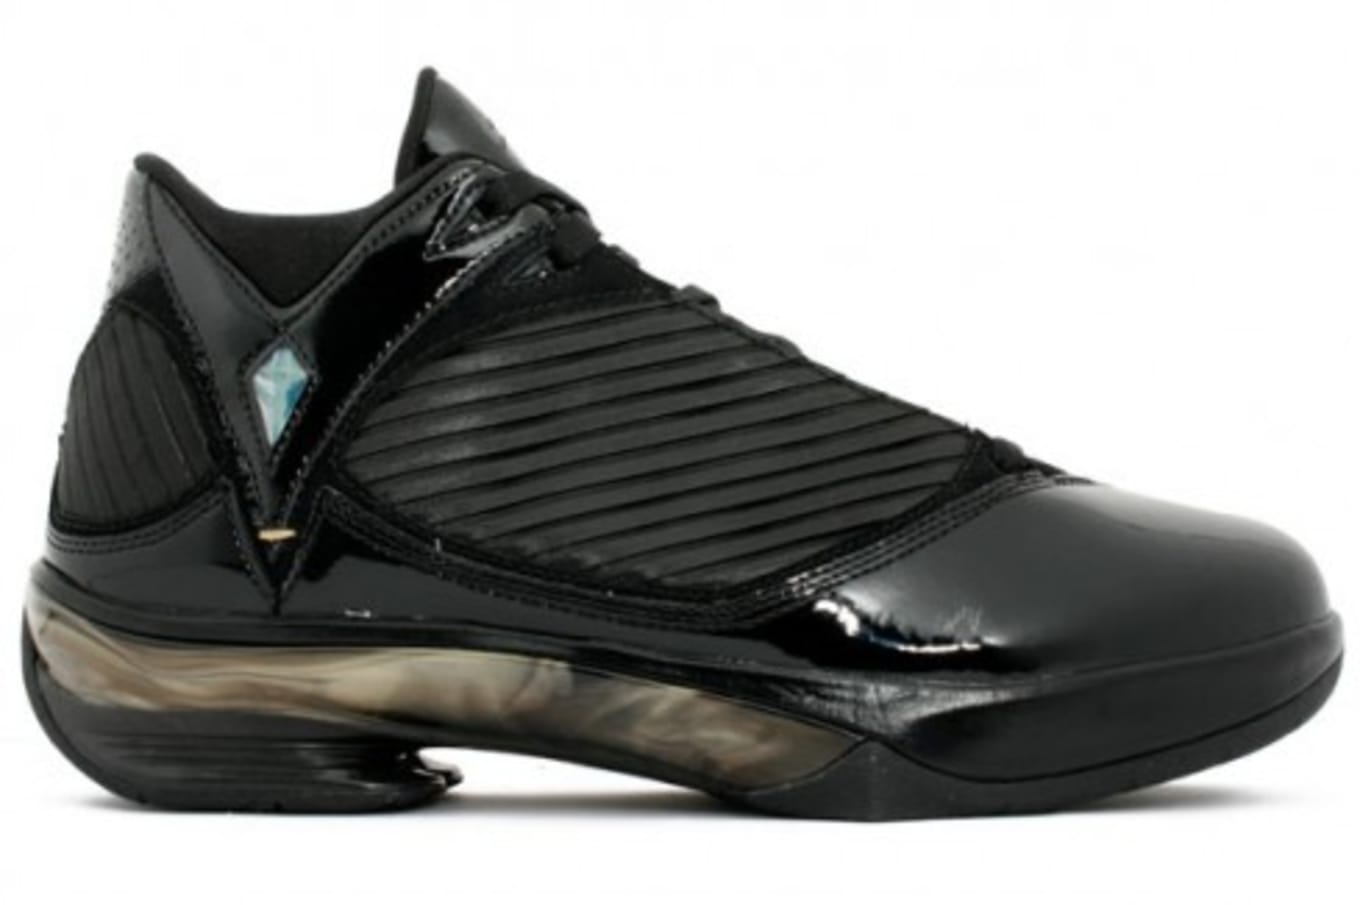 low priced 8c000 2c985 Following a change in naming convention, transitioning from Roman numerals  to years, this was the first Air Jordan 2009 to hit retail. Its release was  ...